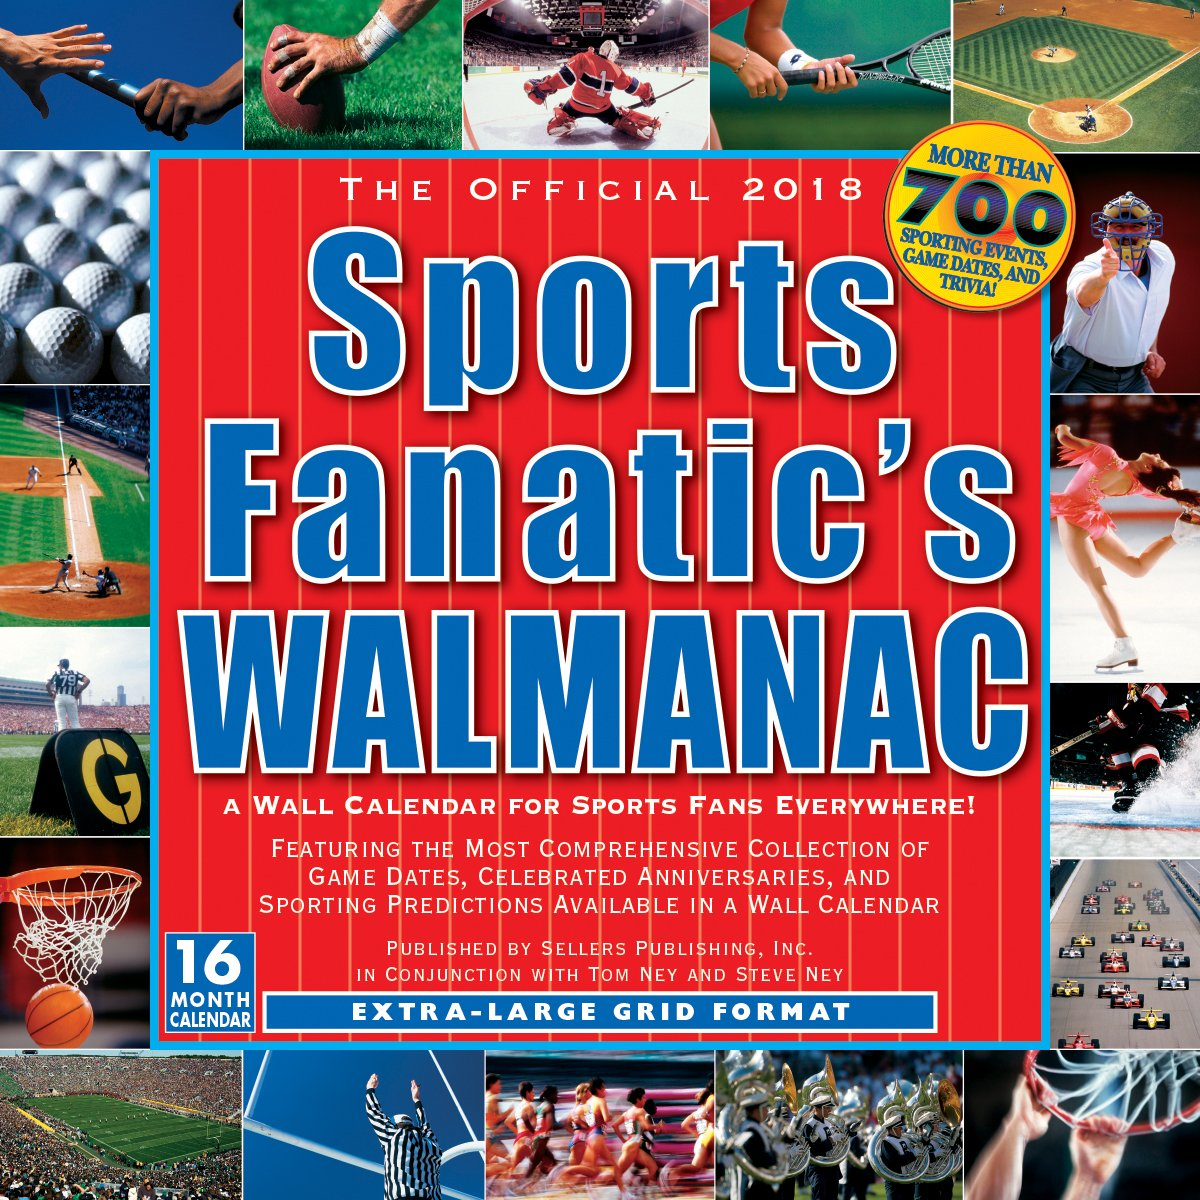 The Official Sports Fanatic's Walmanac: A Wall Calendar For Sports Fans Everywhere 2018 Wall Calendar (CA0164) by Sellers Publishing, Inc.